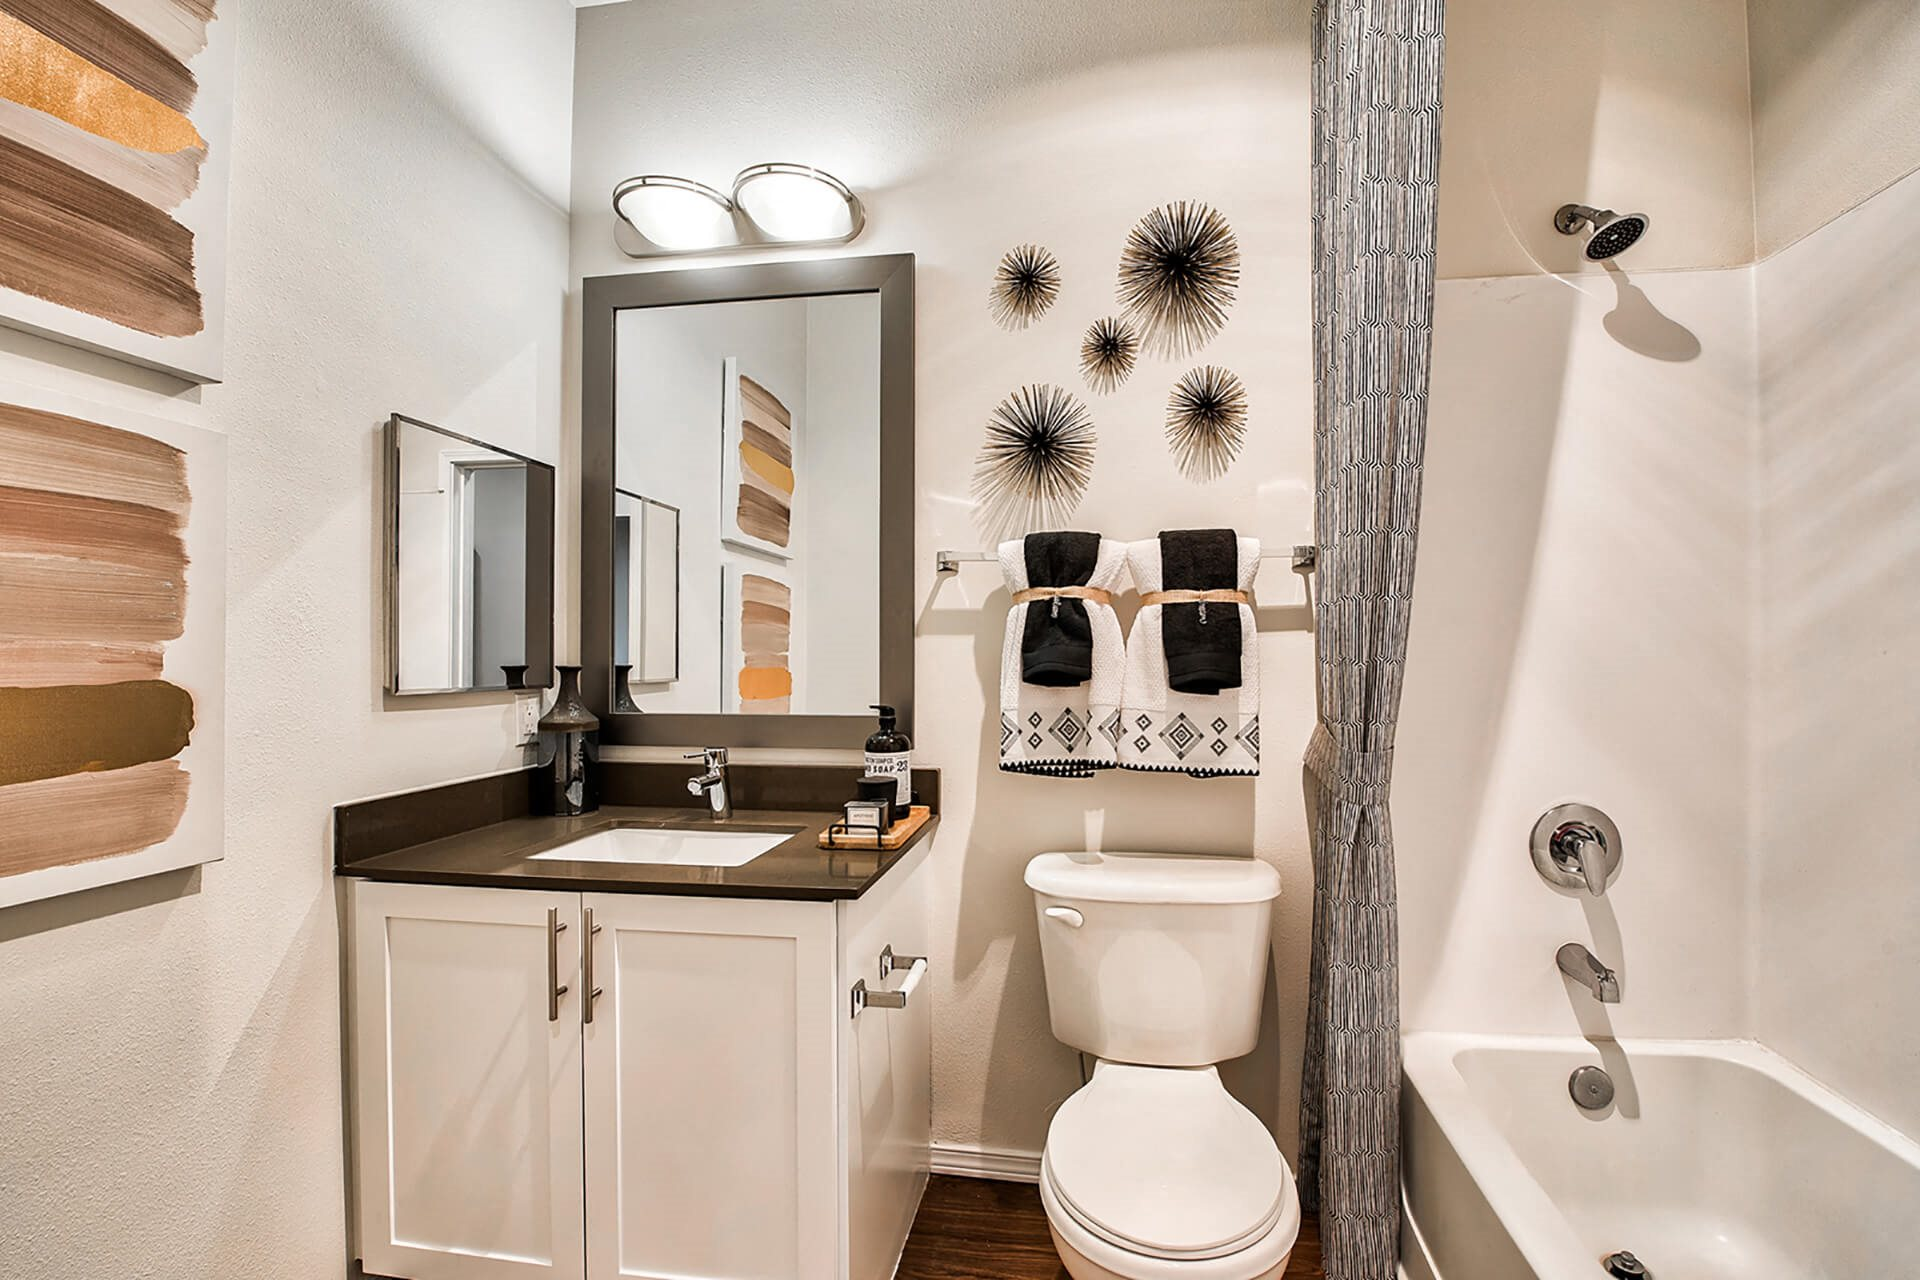 Modern Bathroom Fittings at Reflections by Windsor, Washington, 98052